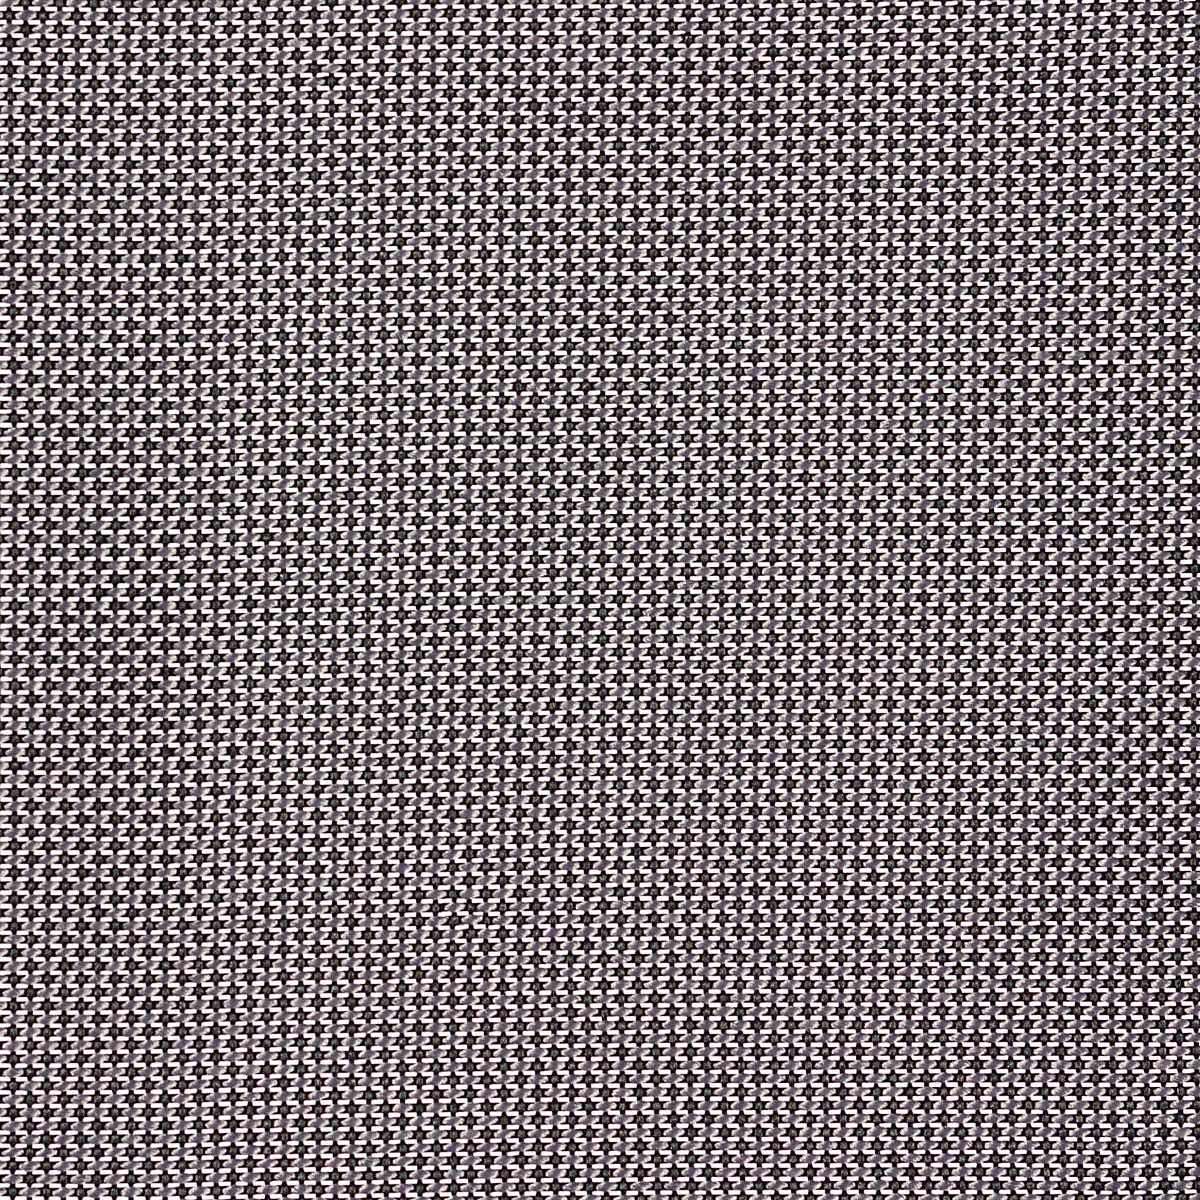 A Graphite dark gray suspension swatch.